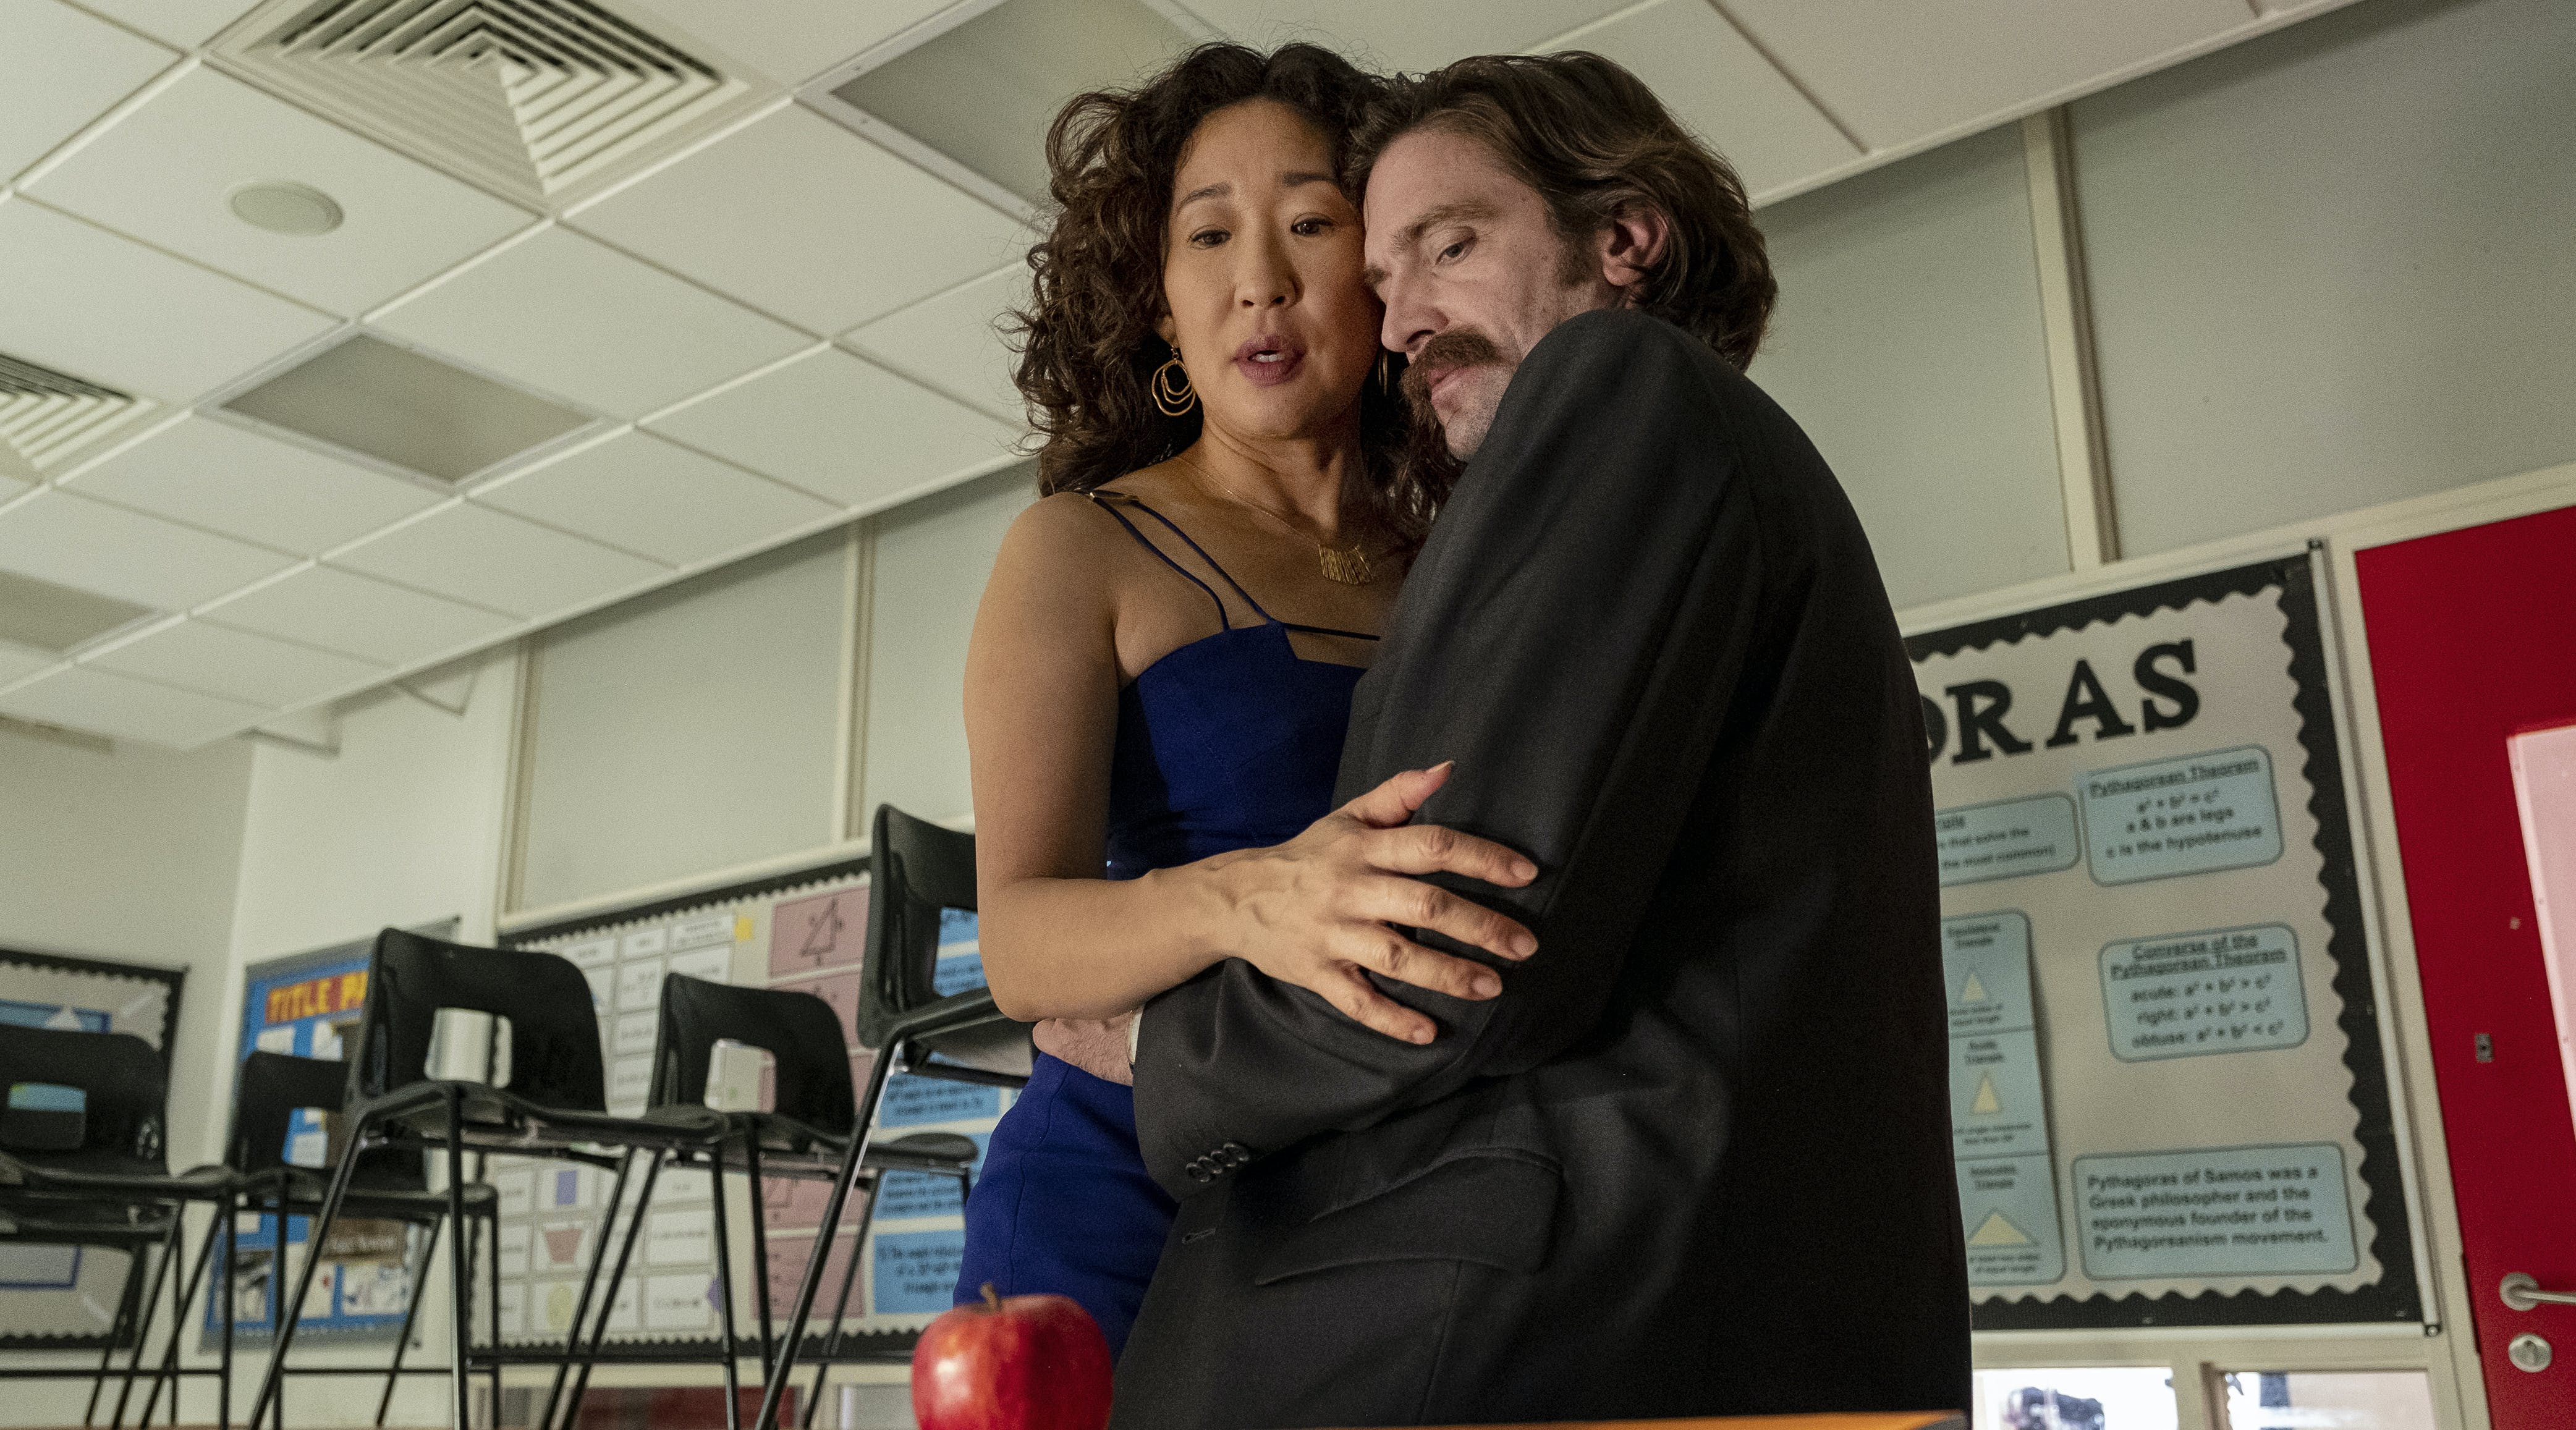 So, Is Villanelle Going to Kill Niko on 'Killing Eve' or Just Try to Break Up His Marriage?